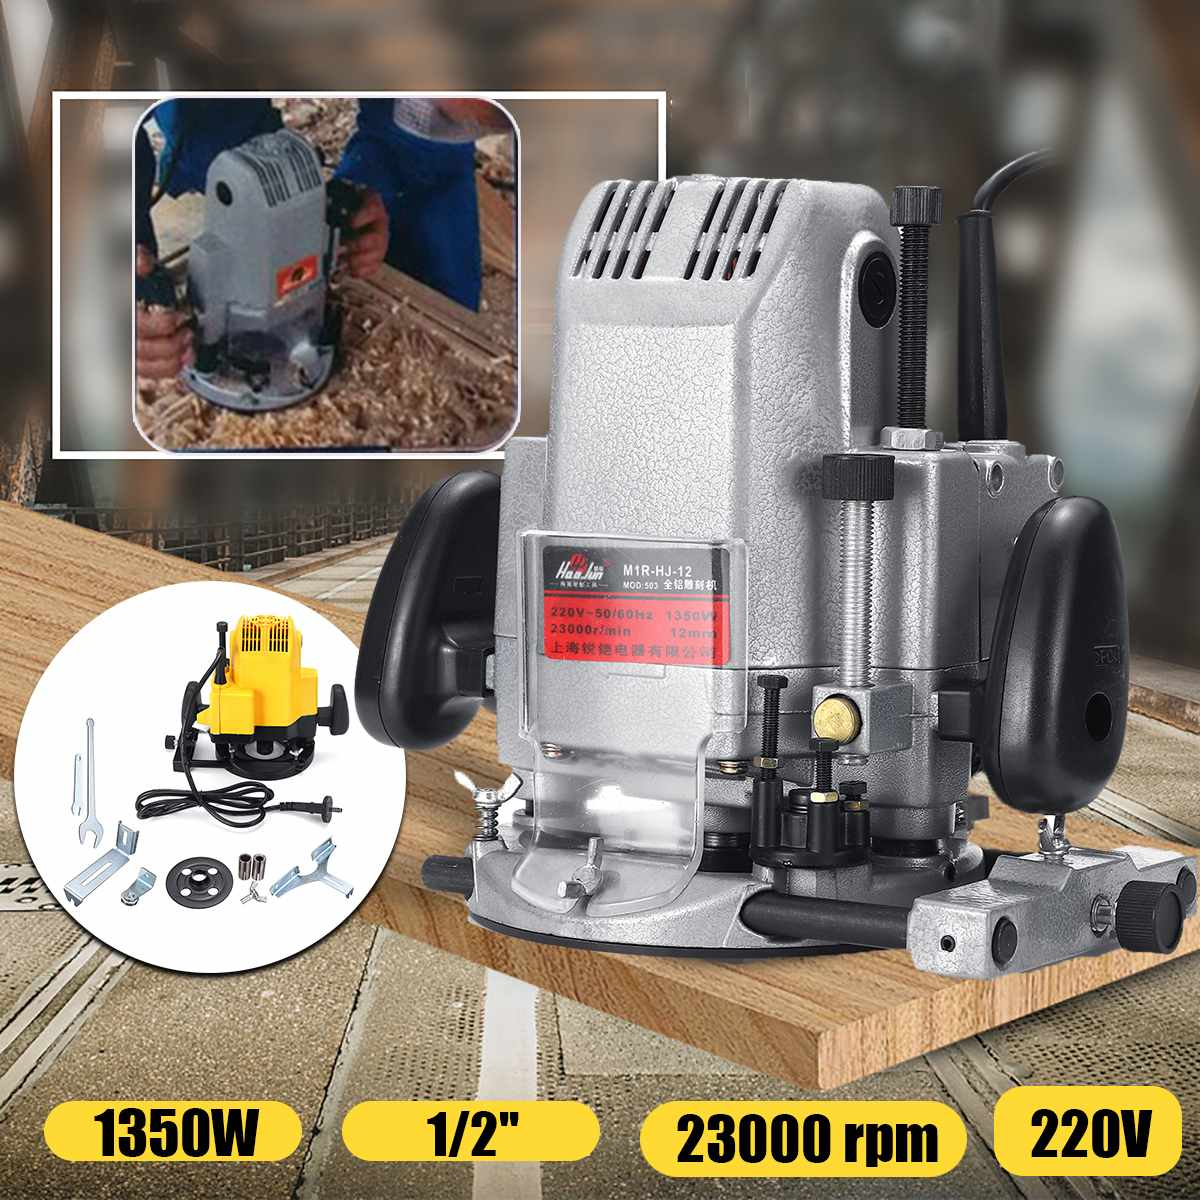 Drillpro 1350w 220V Powerful Electric Trimmer Wood Trimmer Machine Aluminum Shell Hand Trimmer Woodworking Hand Carving Machine - 2